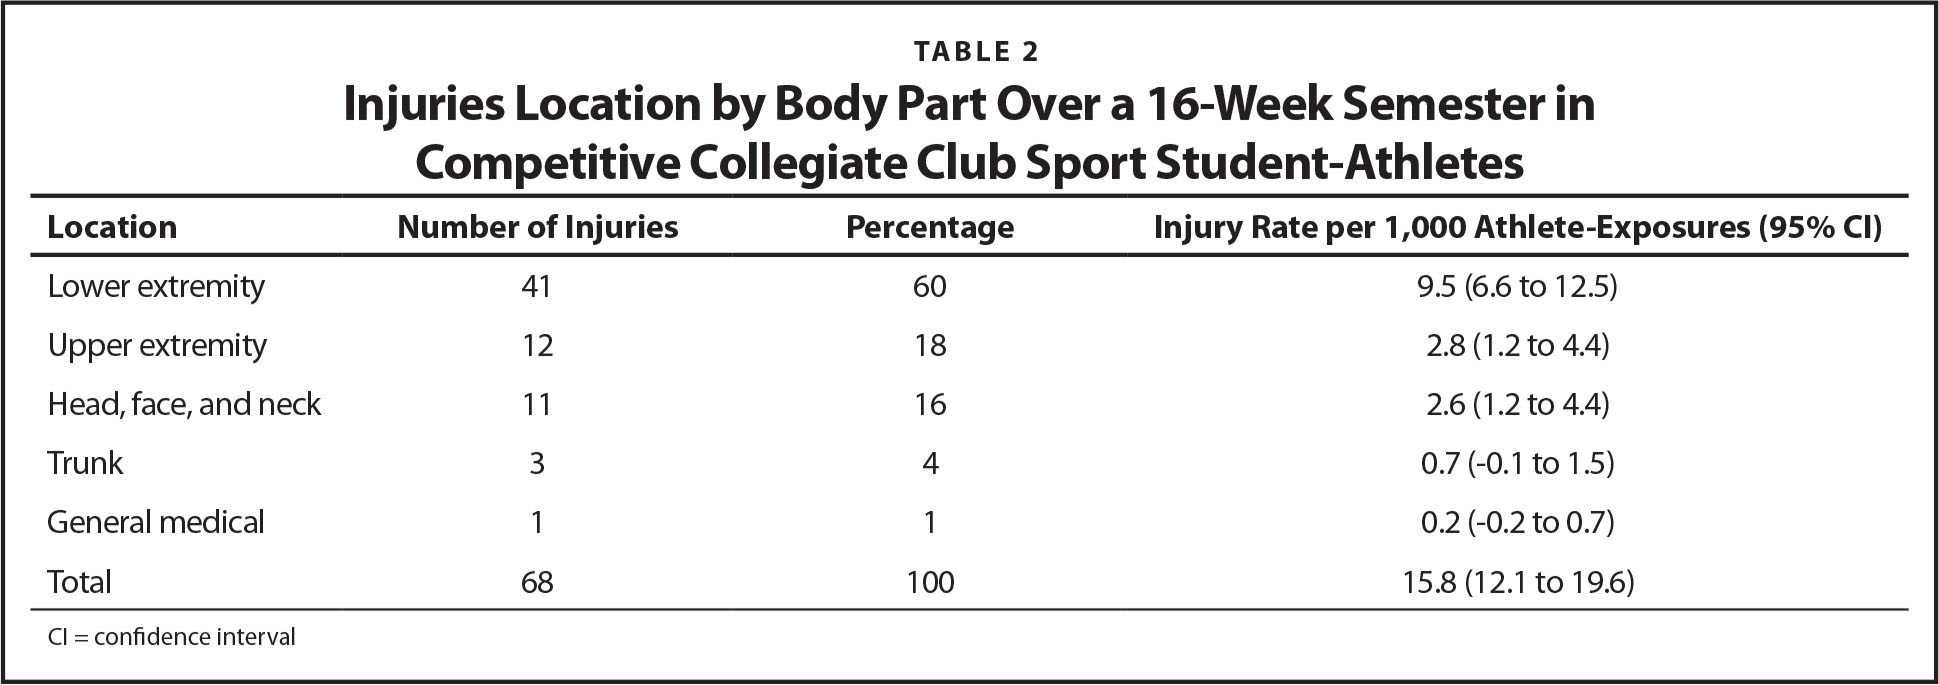 Injuries Location by Body Part Over a 16-Week Semester in Competitive Collegiate Club Sport Student-Athletes